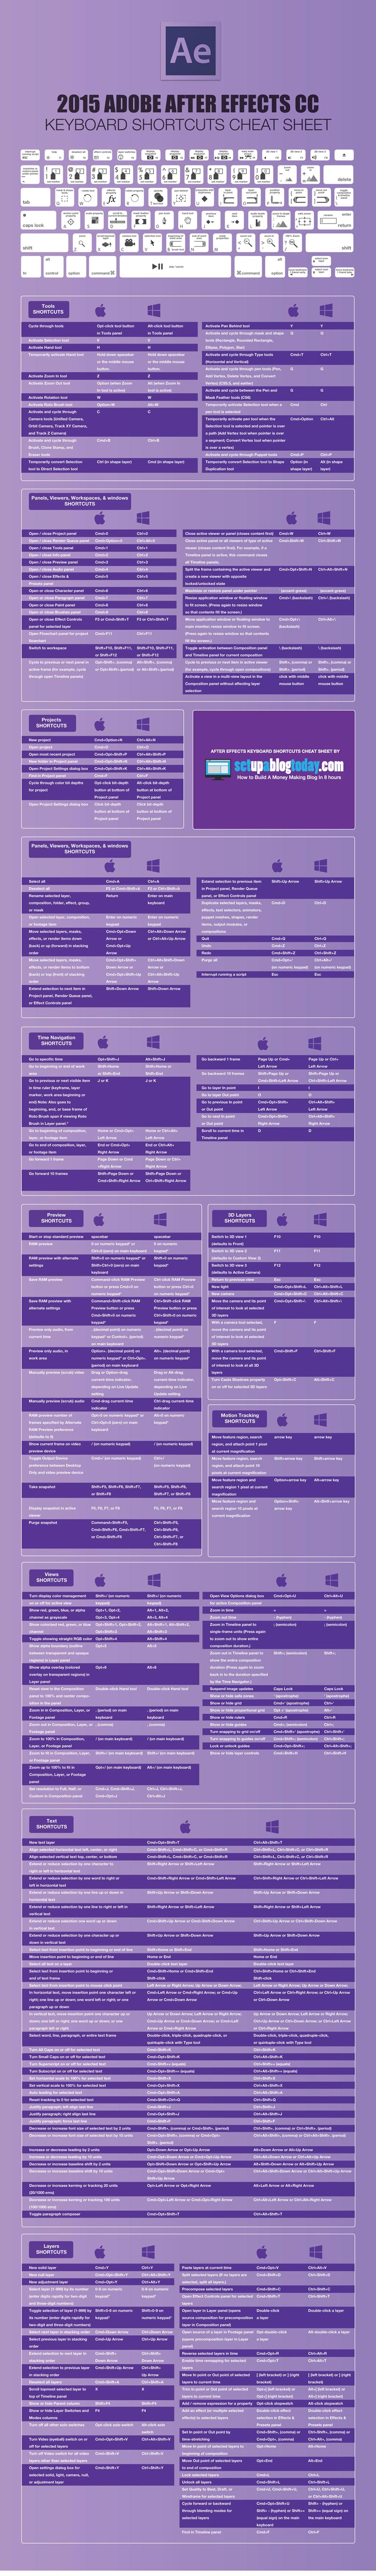 Adobe After Effects keyboard shortcuts